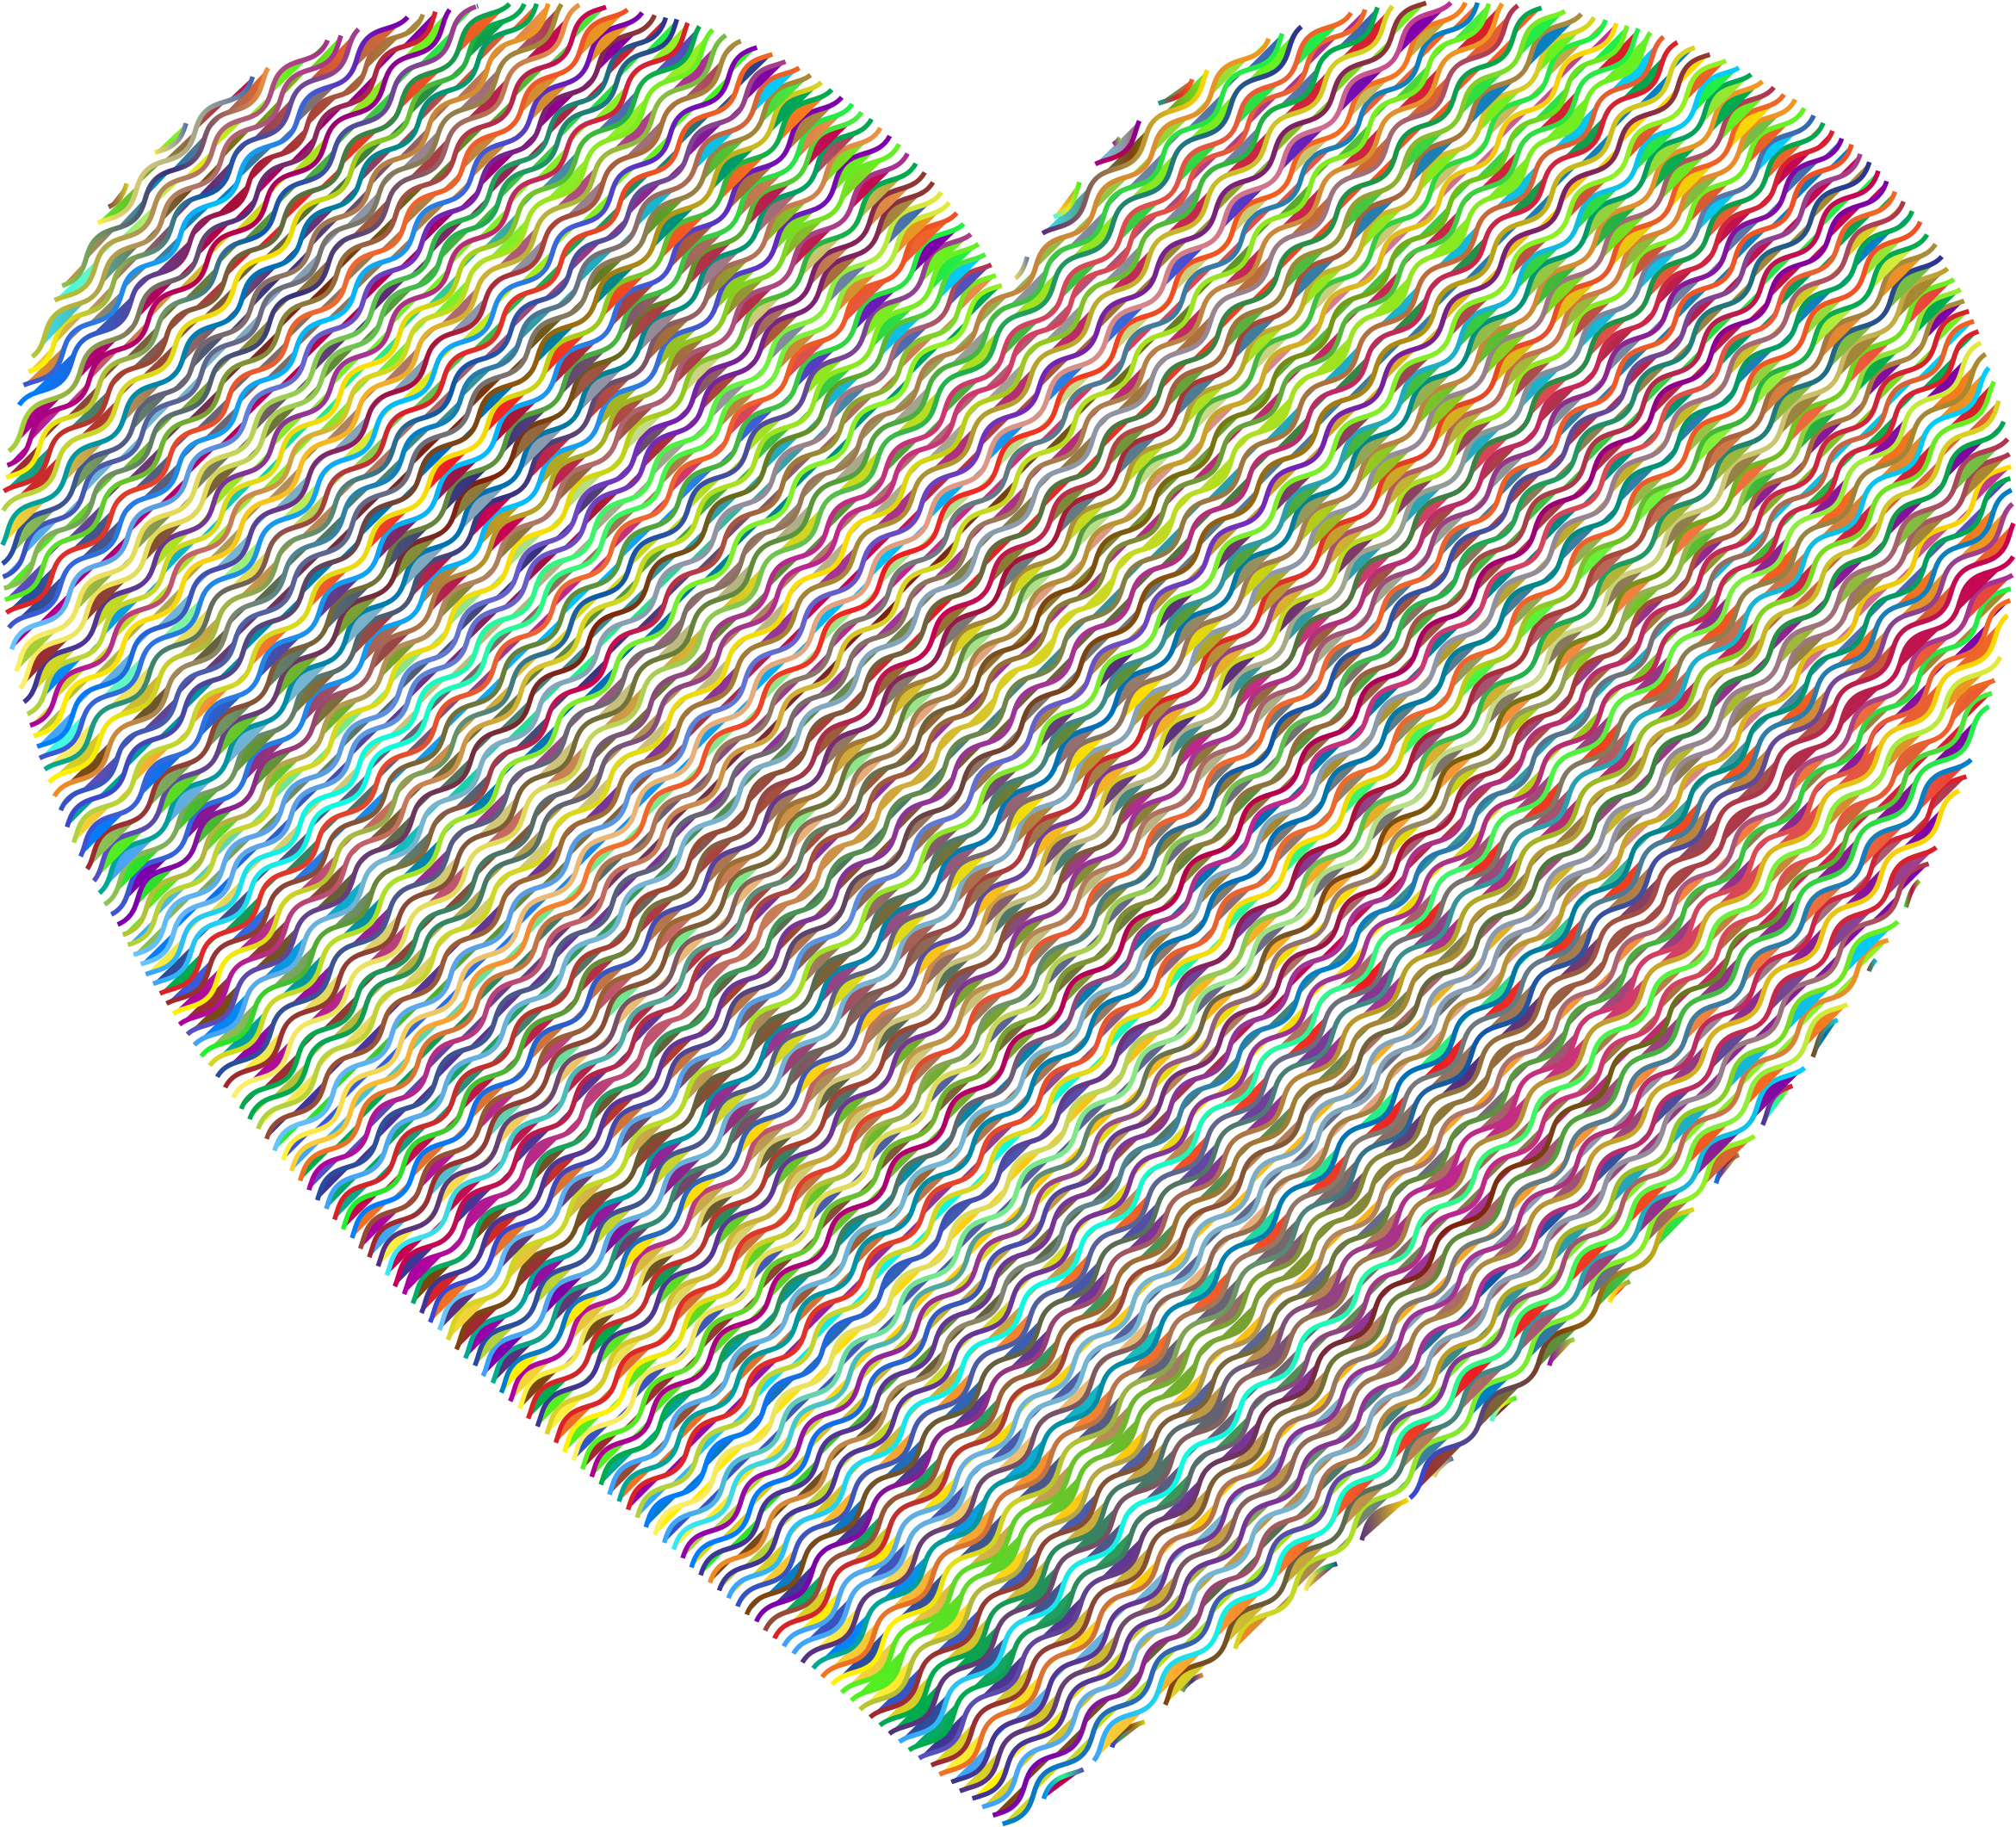 Prismatic Wavy Heart No Background by GDJ